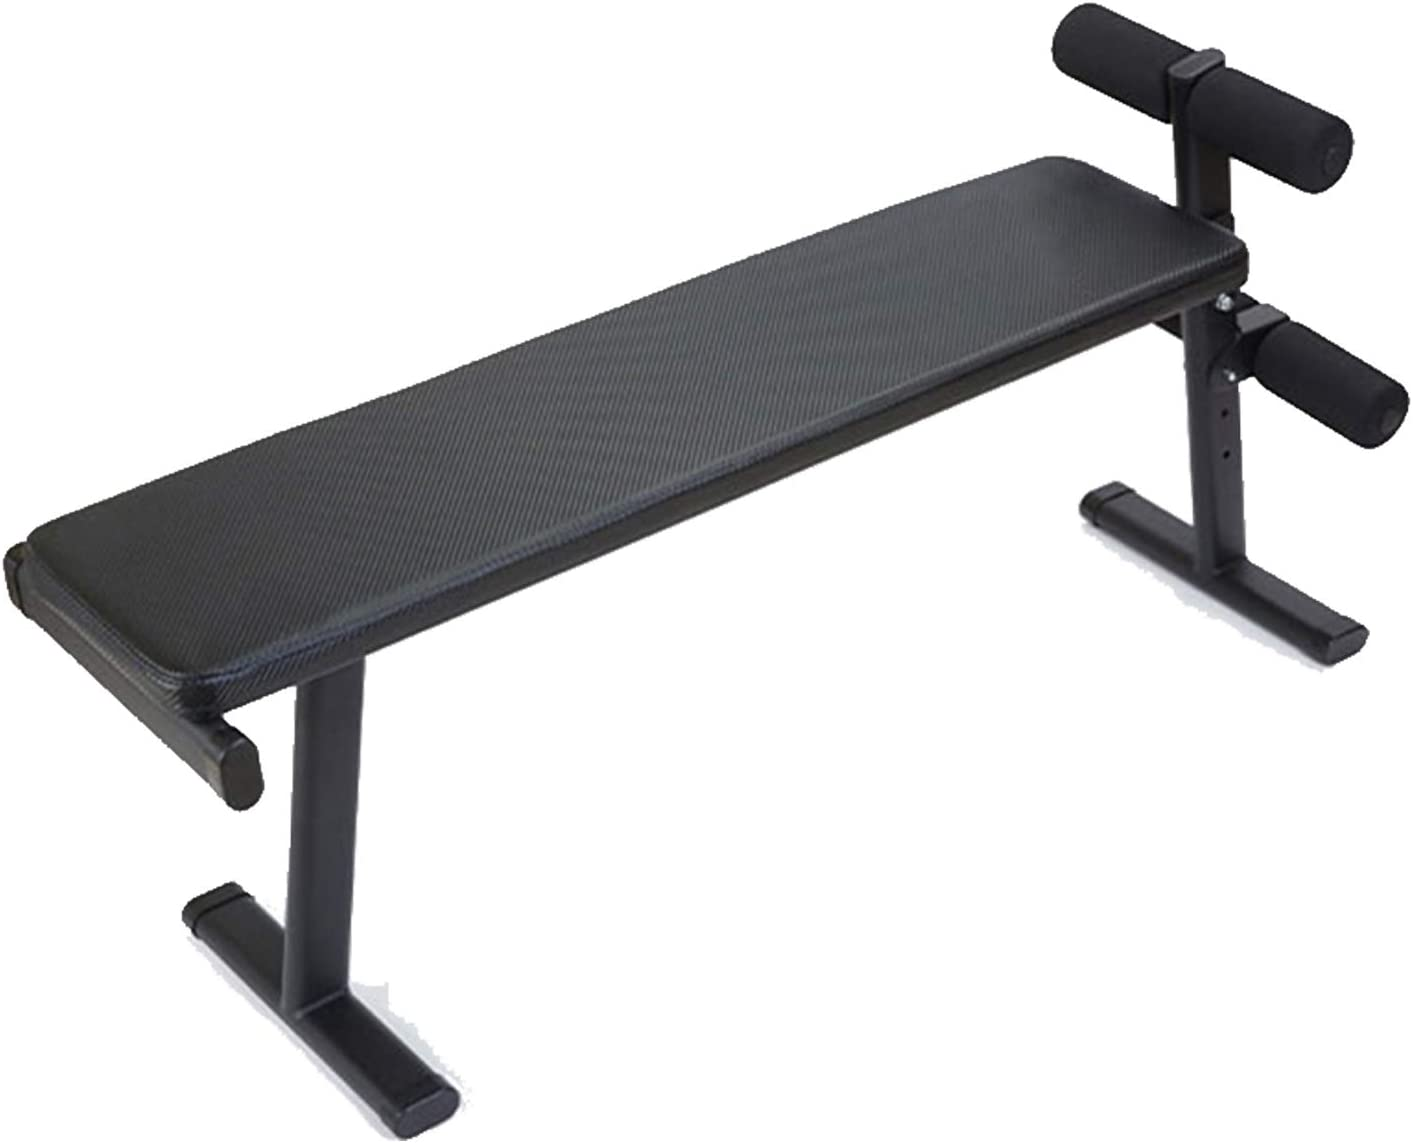 LIQIANG Special price Home Gym Adjustable Popular product Bench Foldin Weight